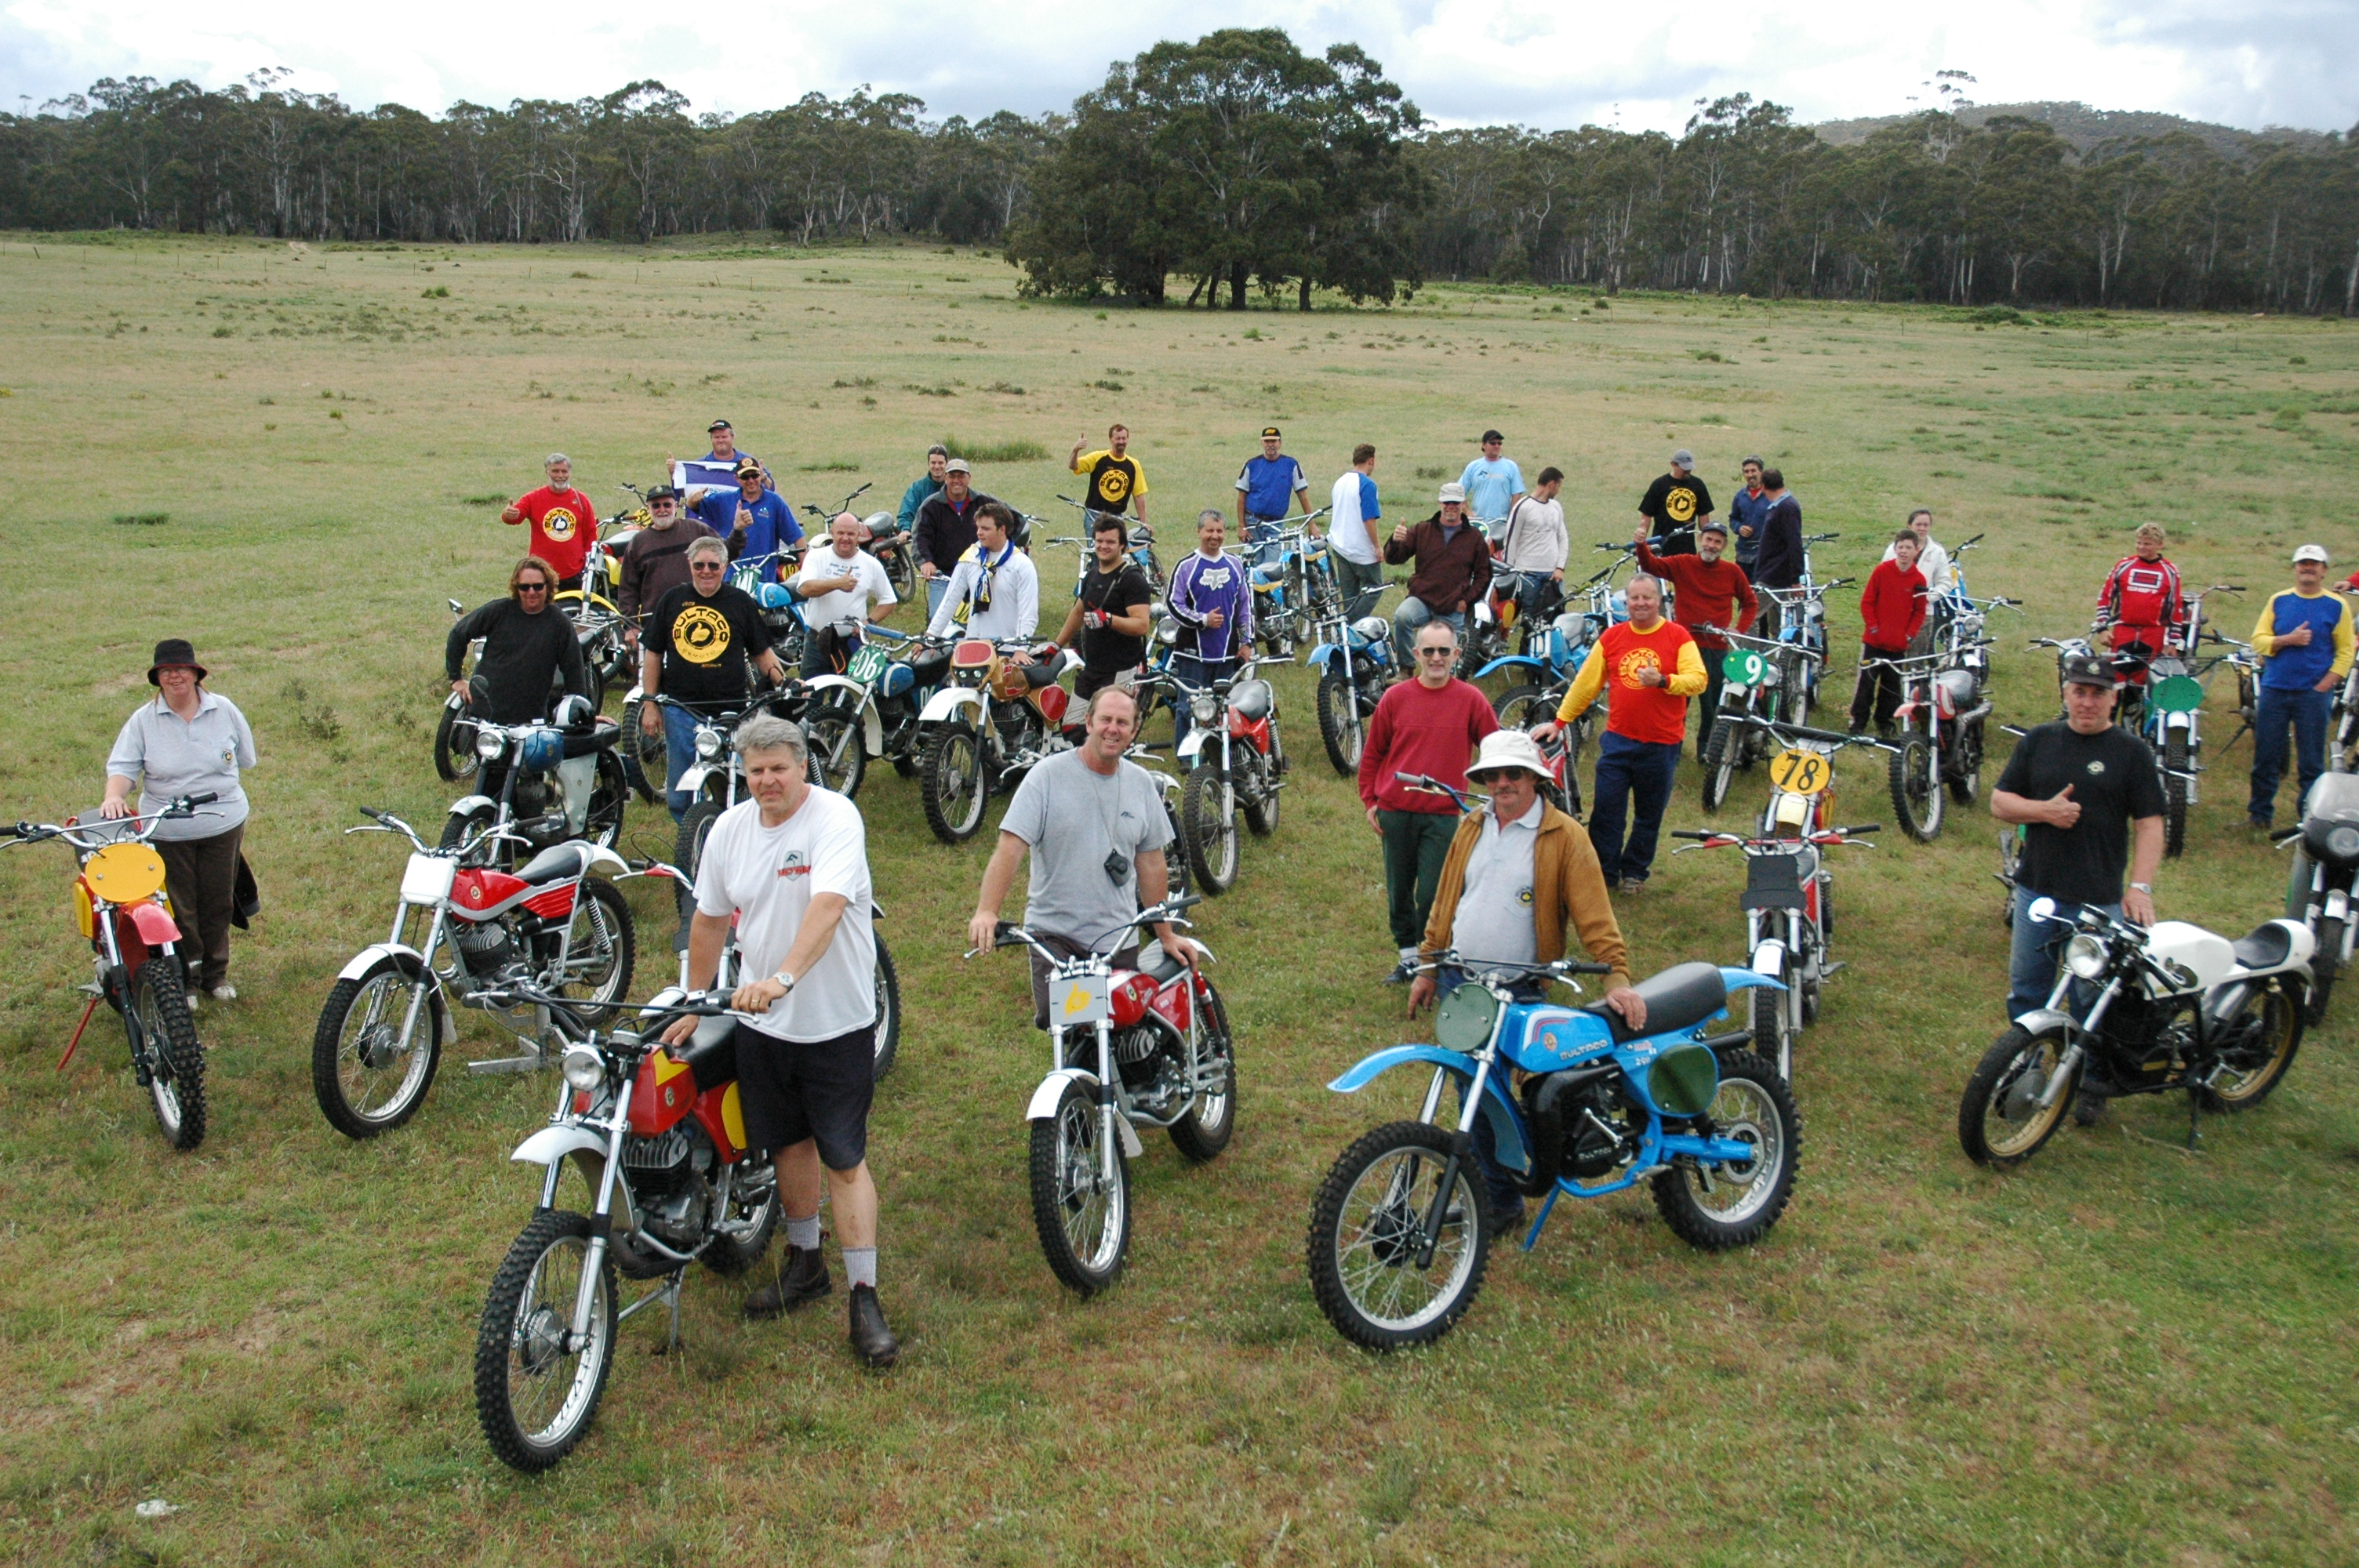 Bultaco owners in 2005